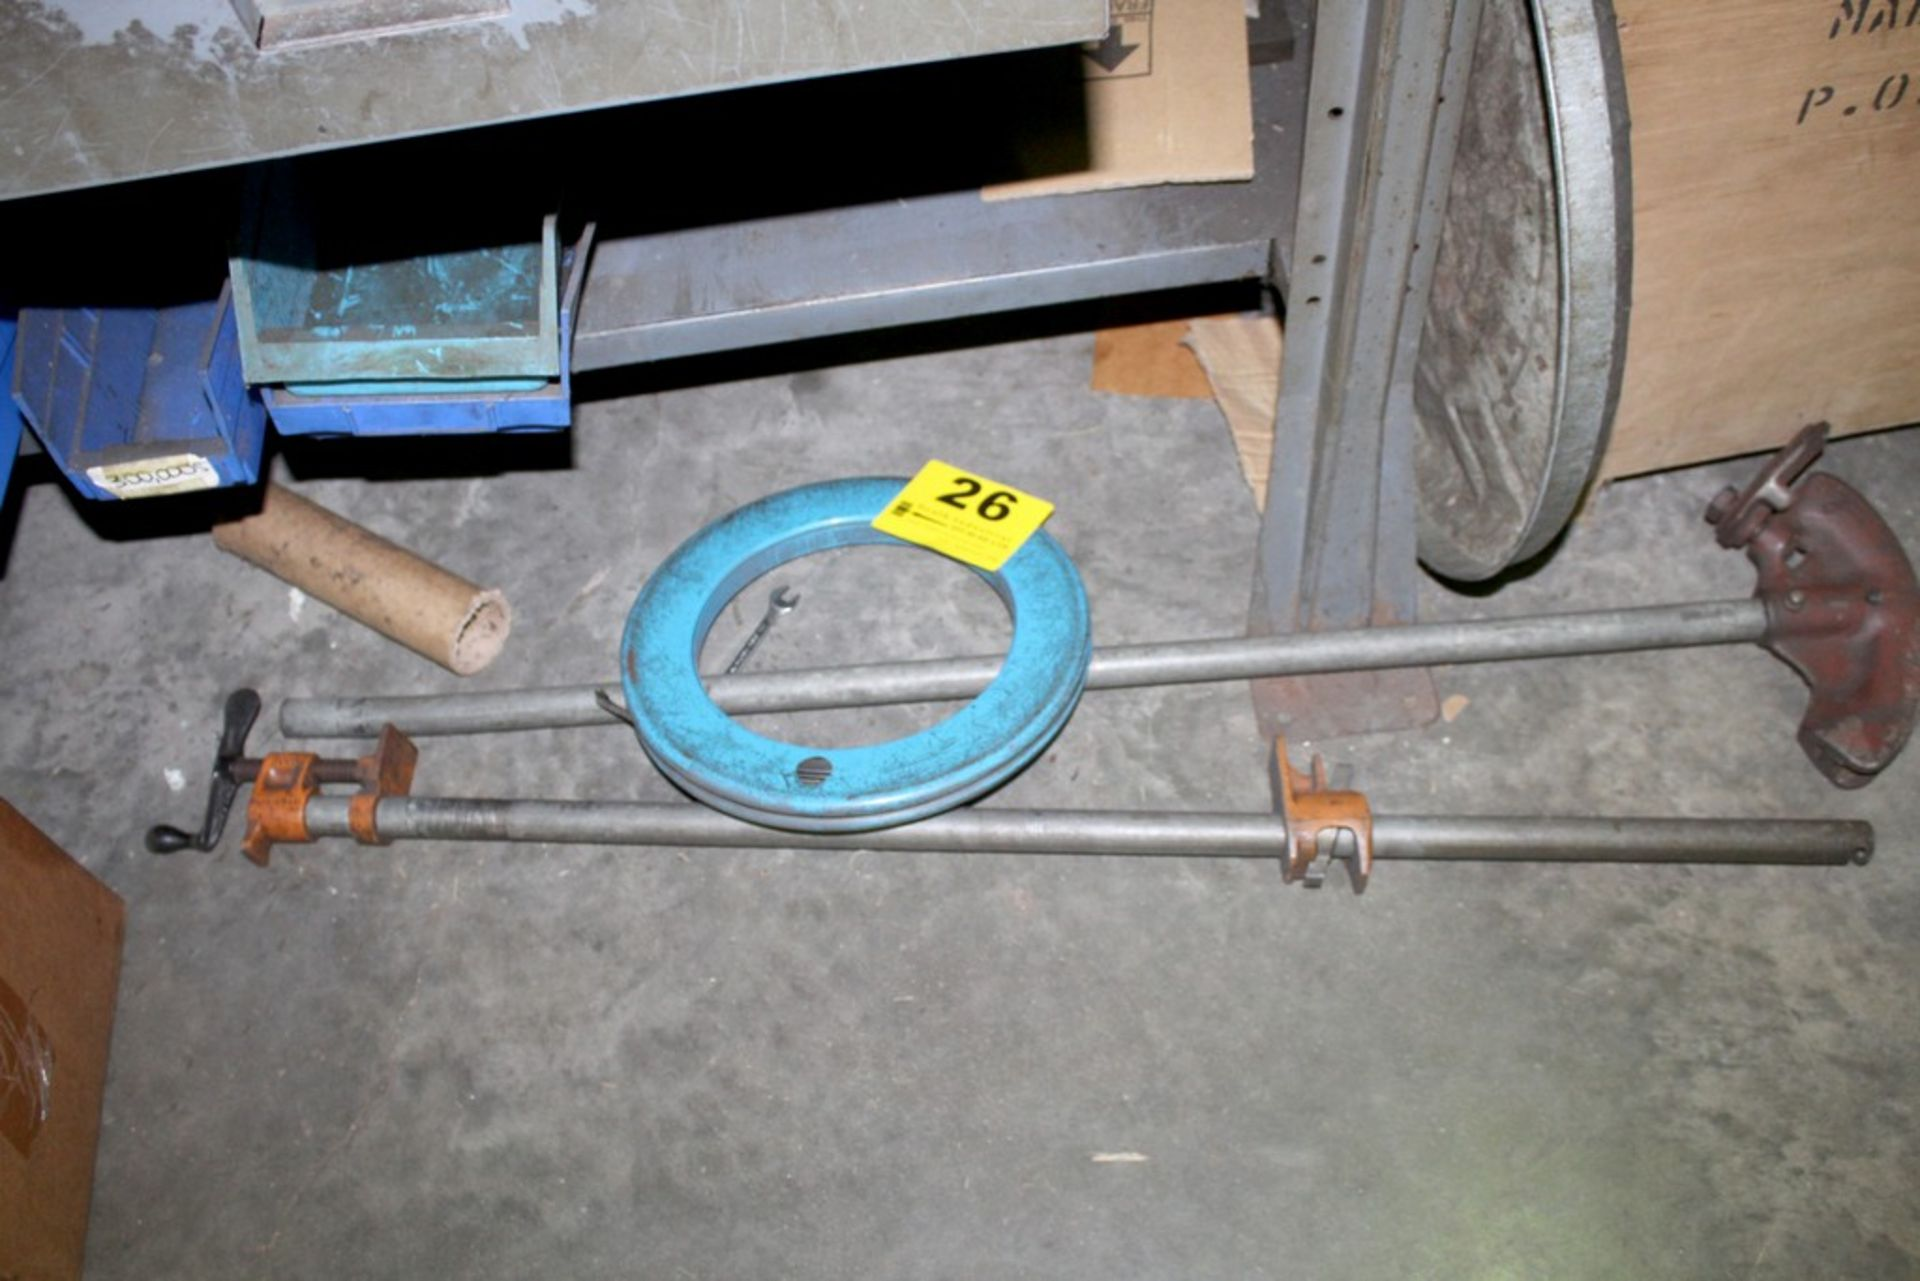 Lot 26 - PIPE BENDER, BAR CLAMP, AND STEEL FISH TAPE